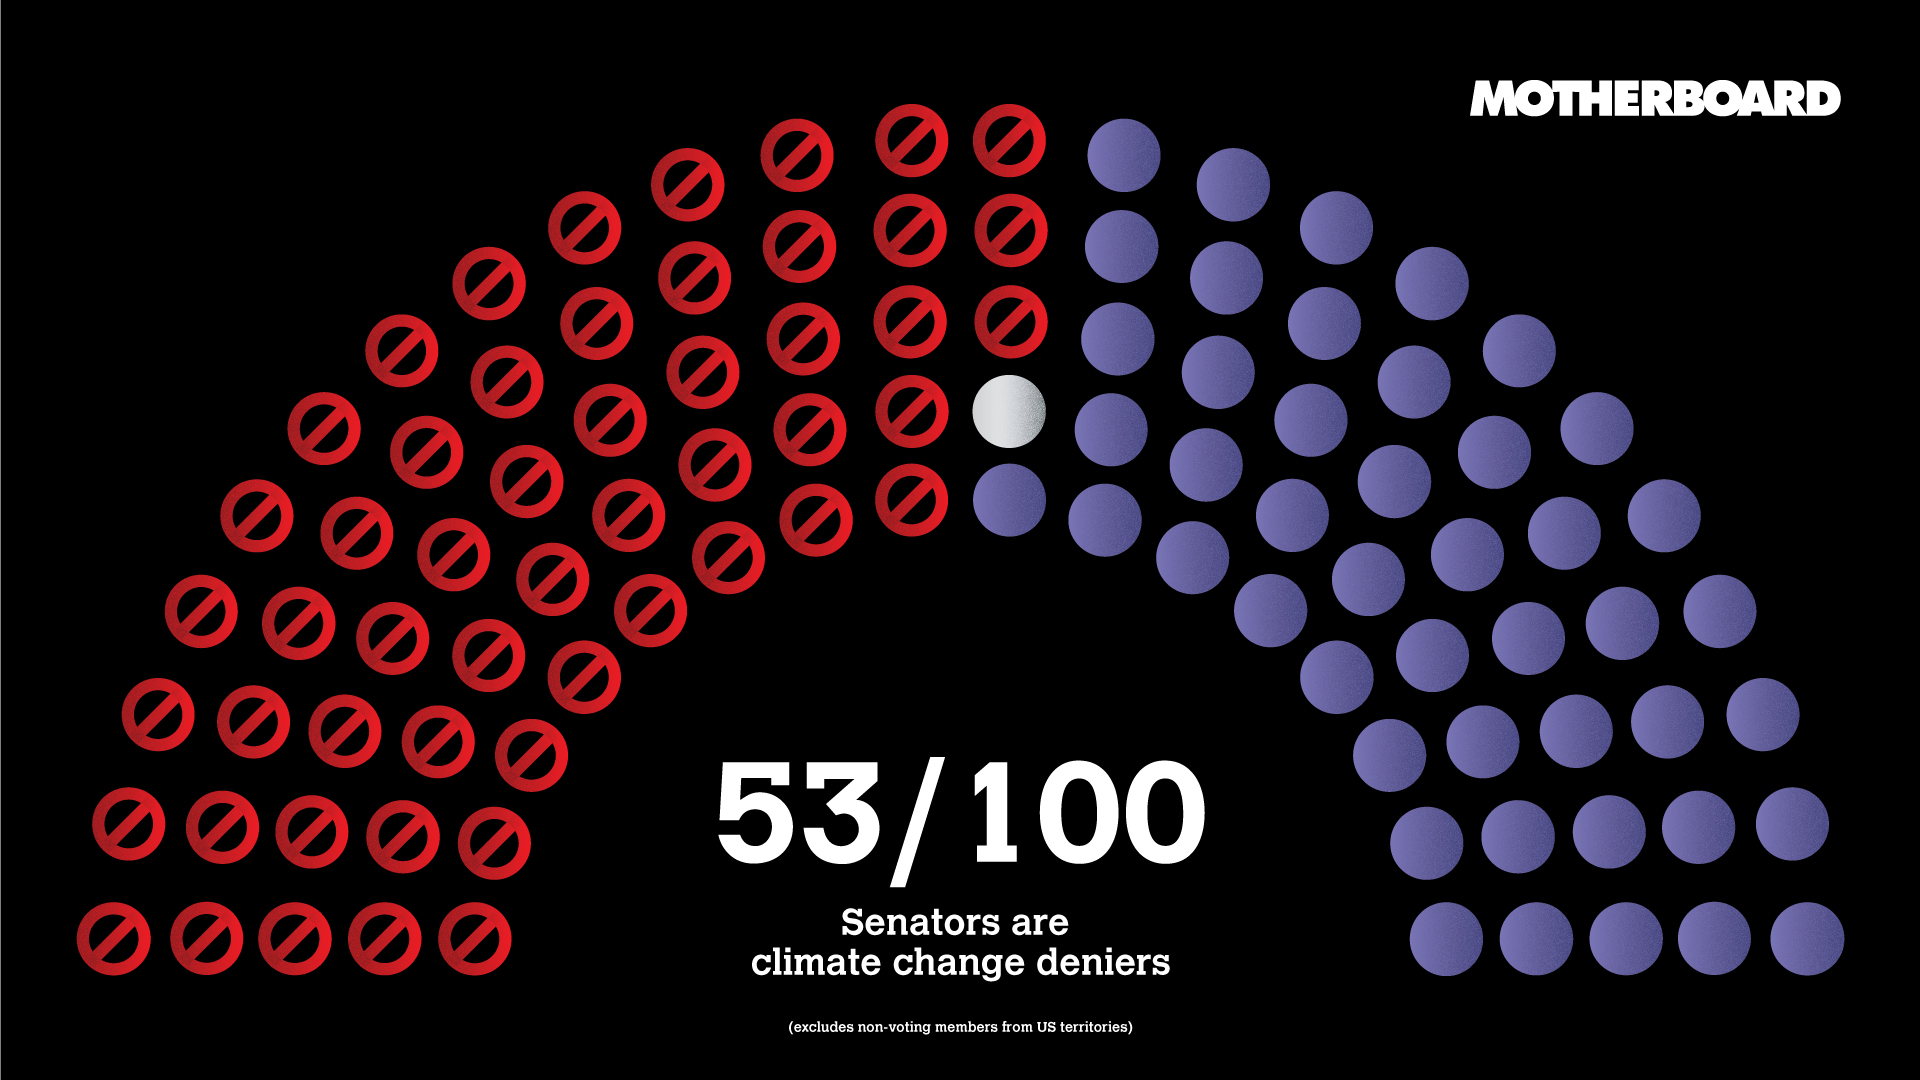 the climate change deniers in congress - motherboard